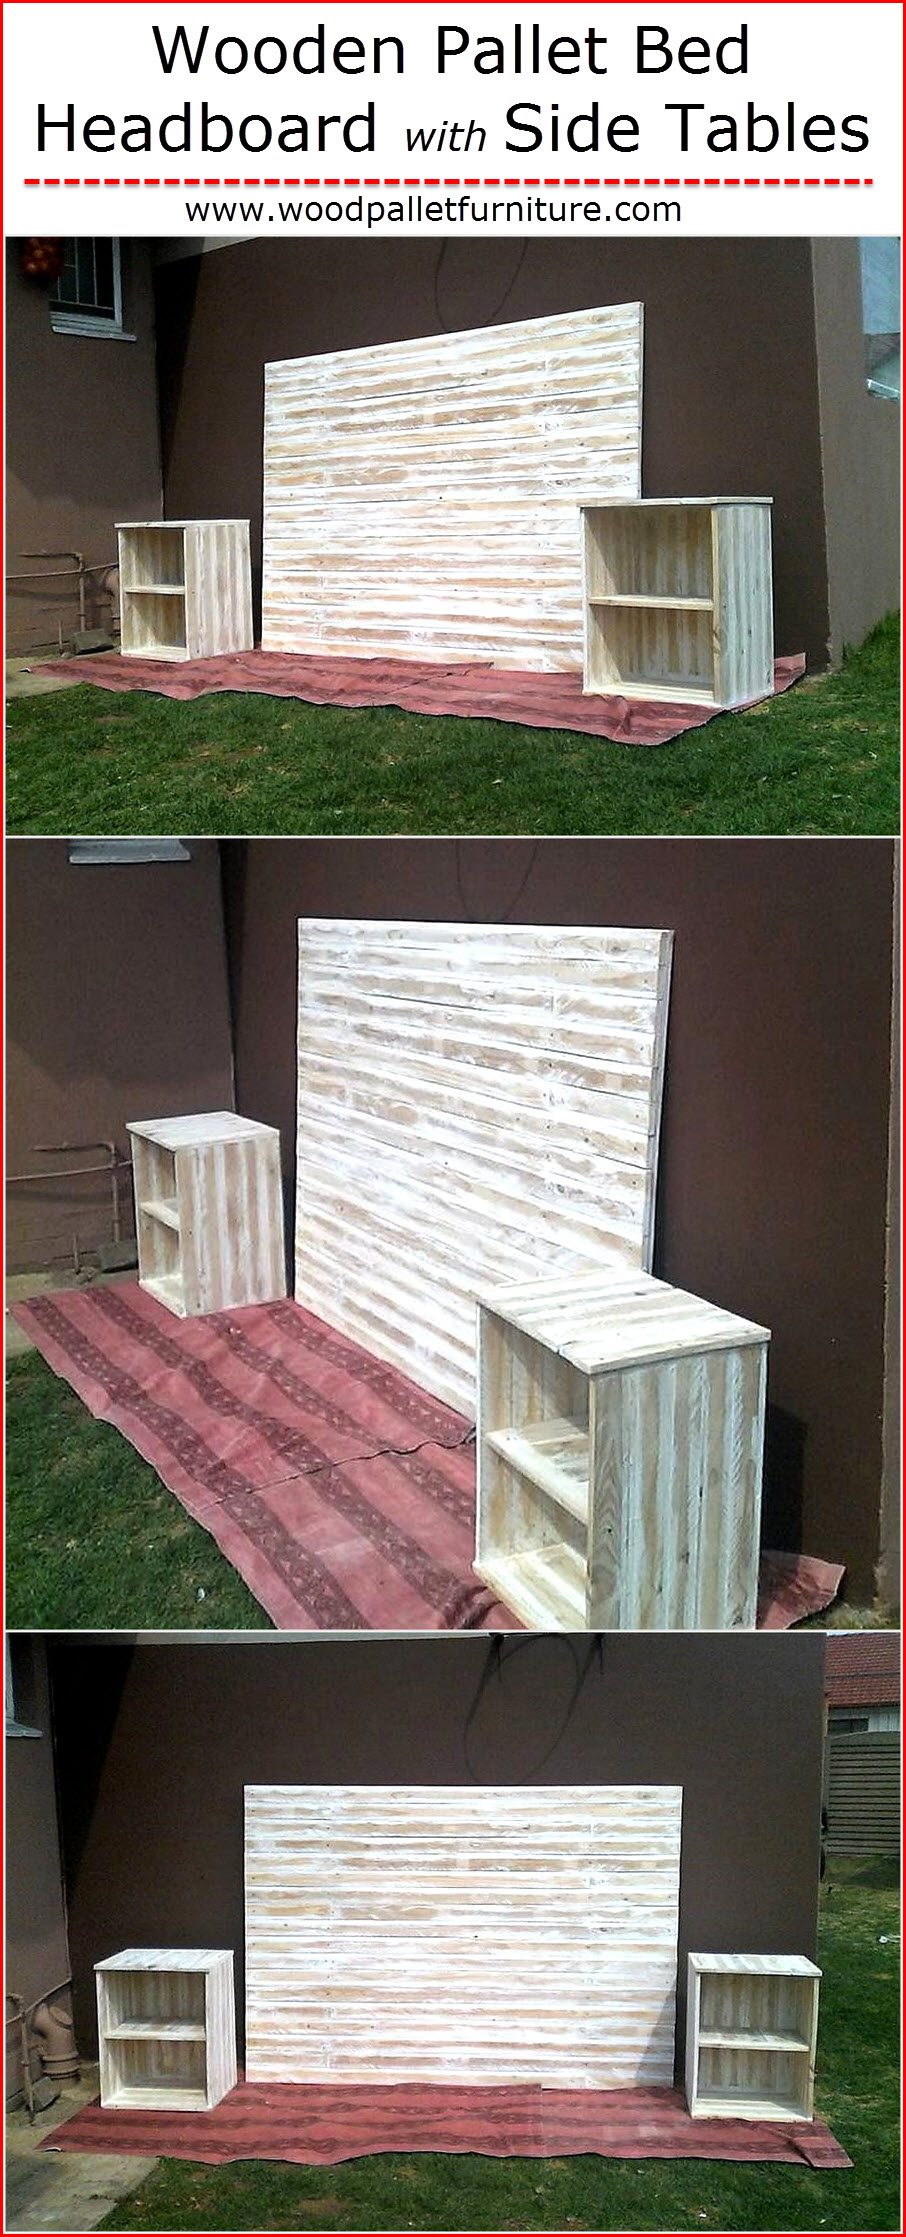 wooden-pallet-bed-headboard-with-side-tables